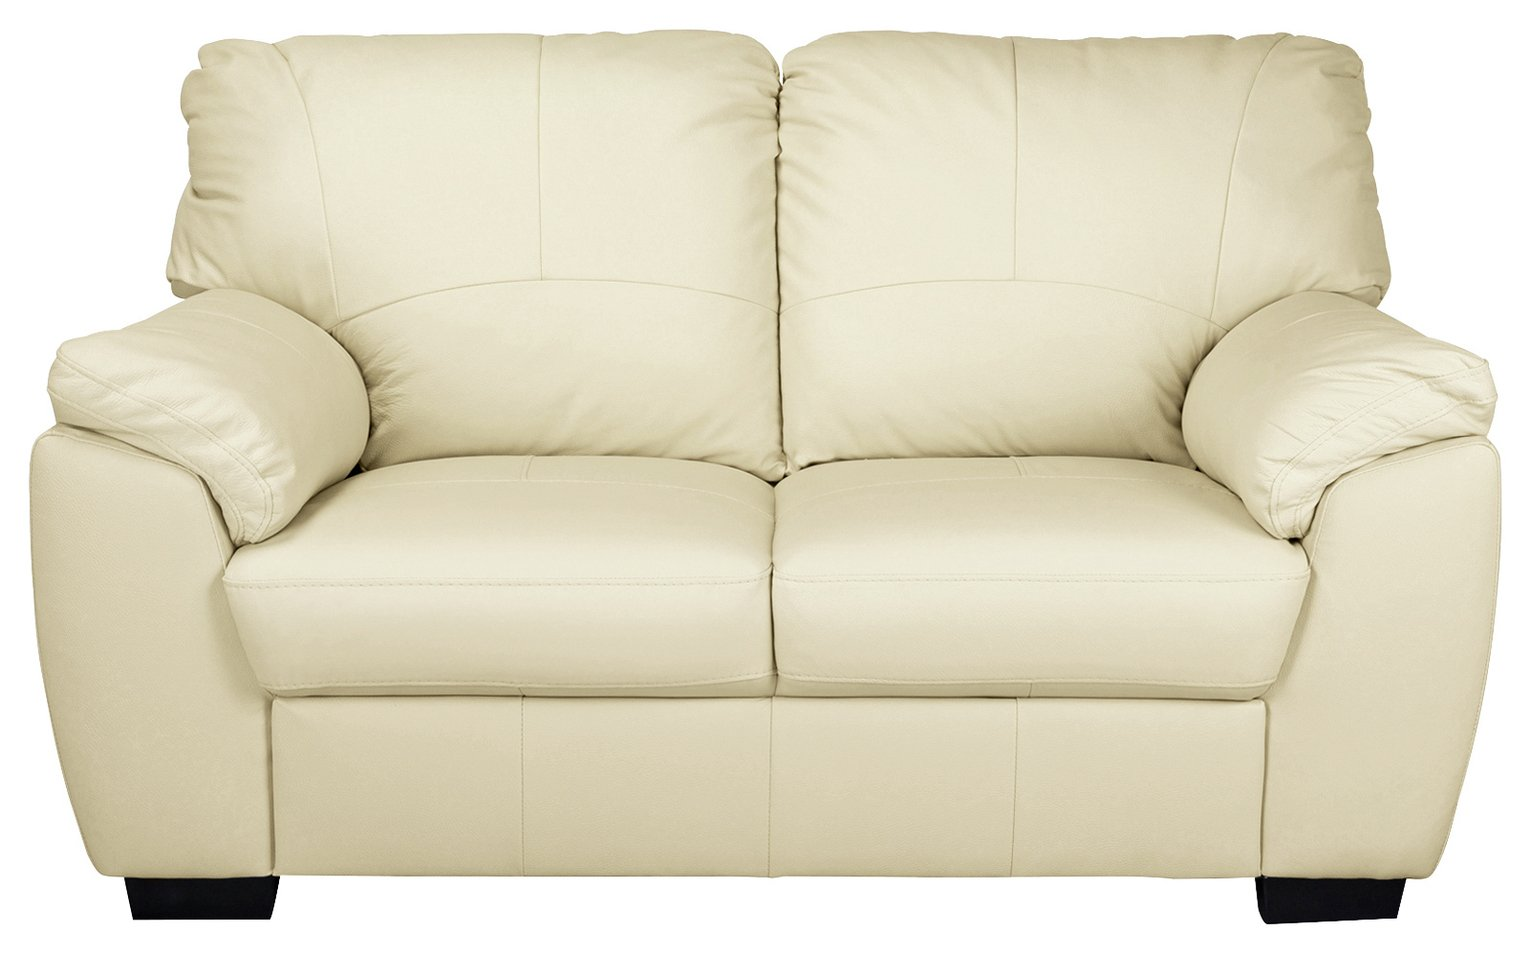 buy argos home milano 2 seater leather sofa ivory sofas argos rh argos co uk ivory leather sofa and loveseat ivory leather sofa bed